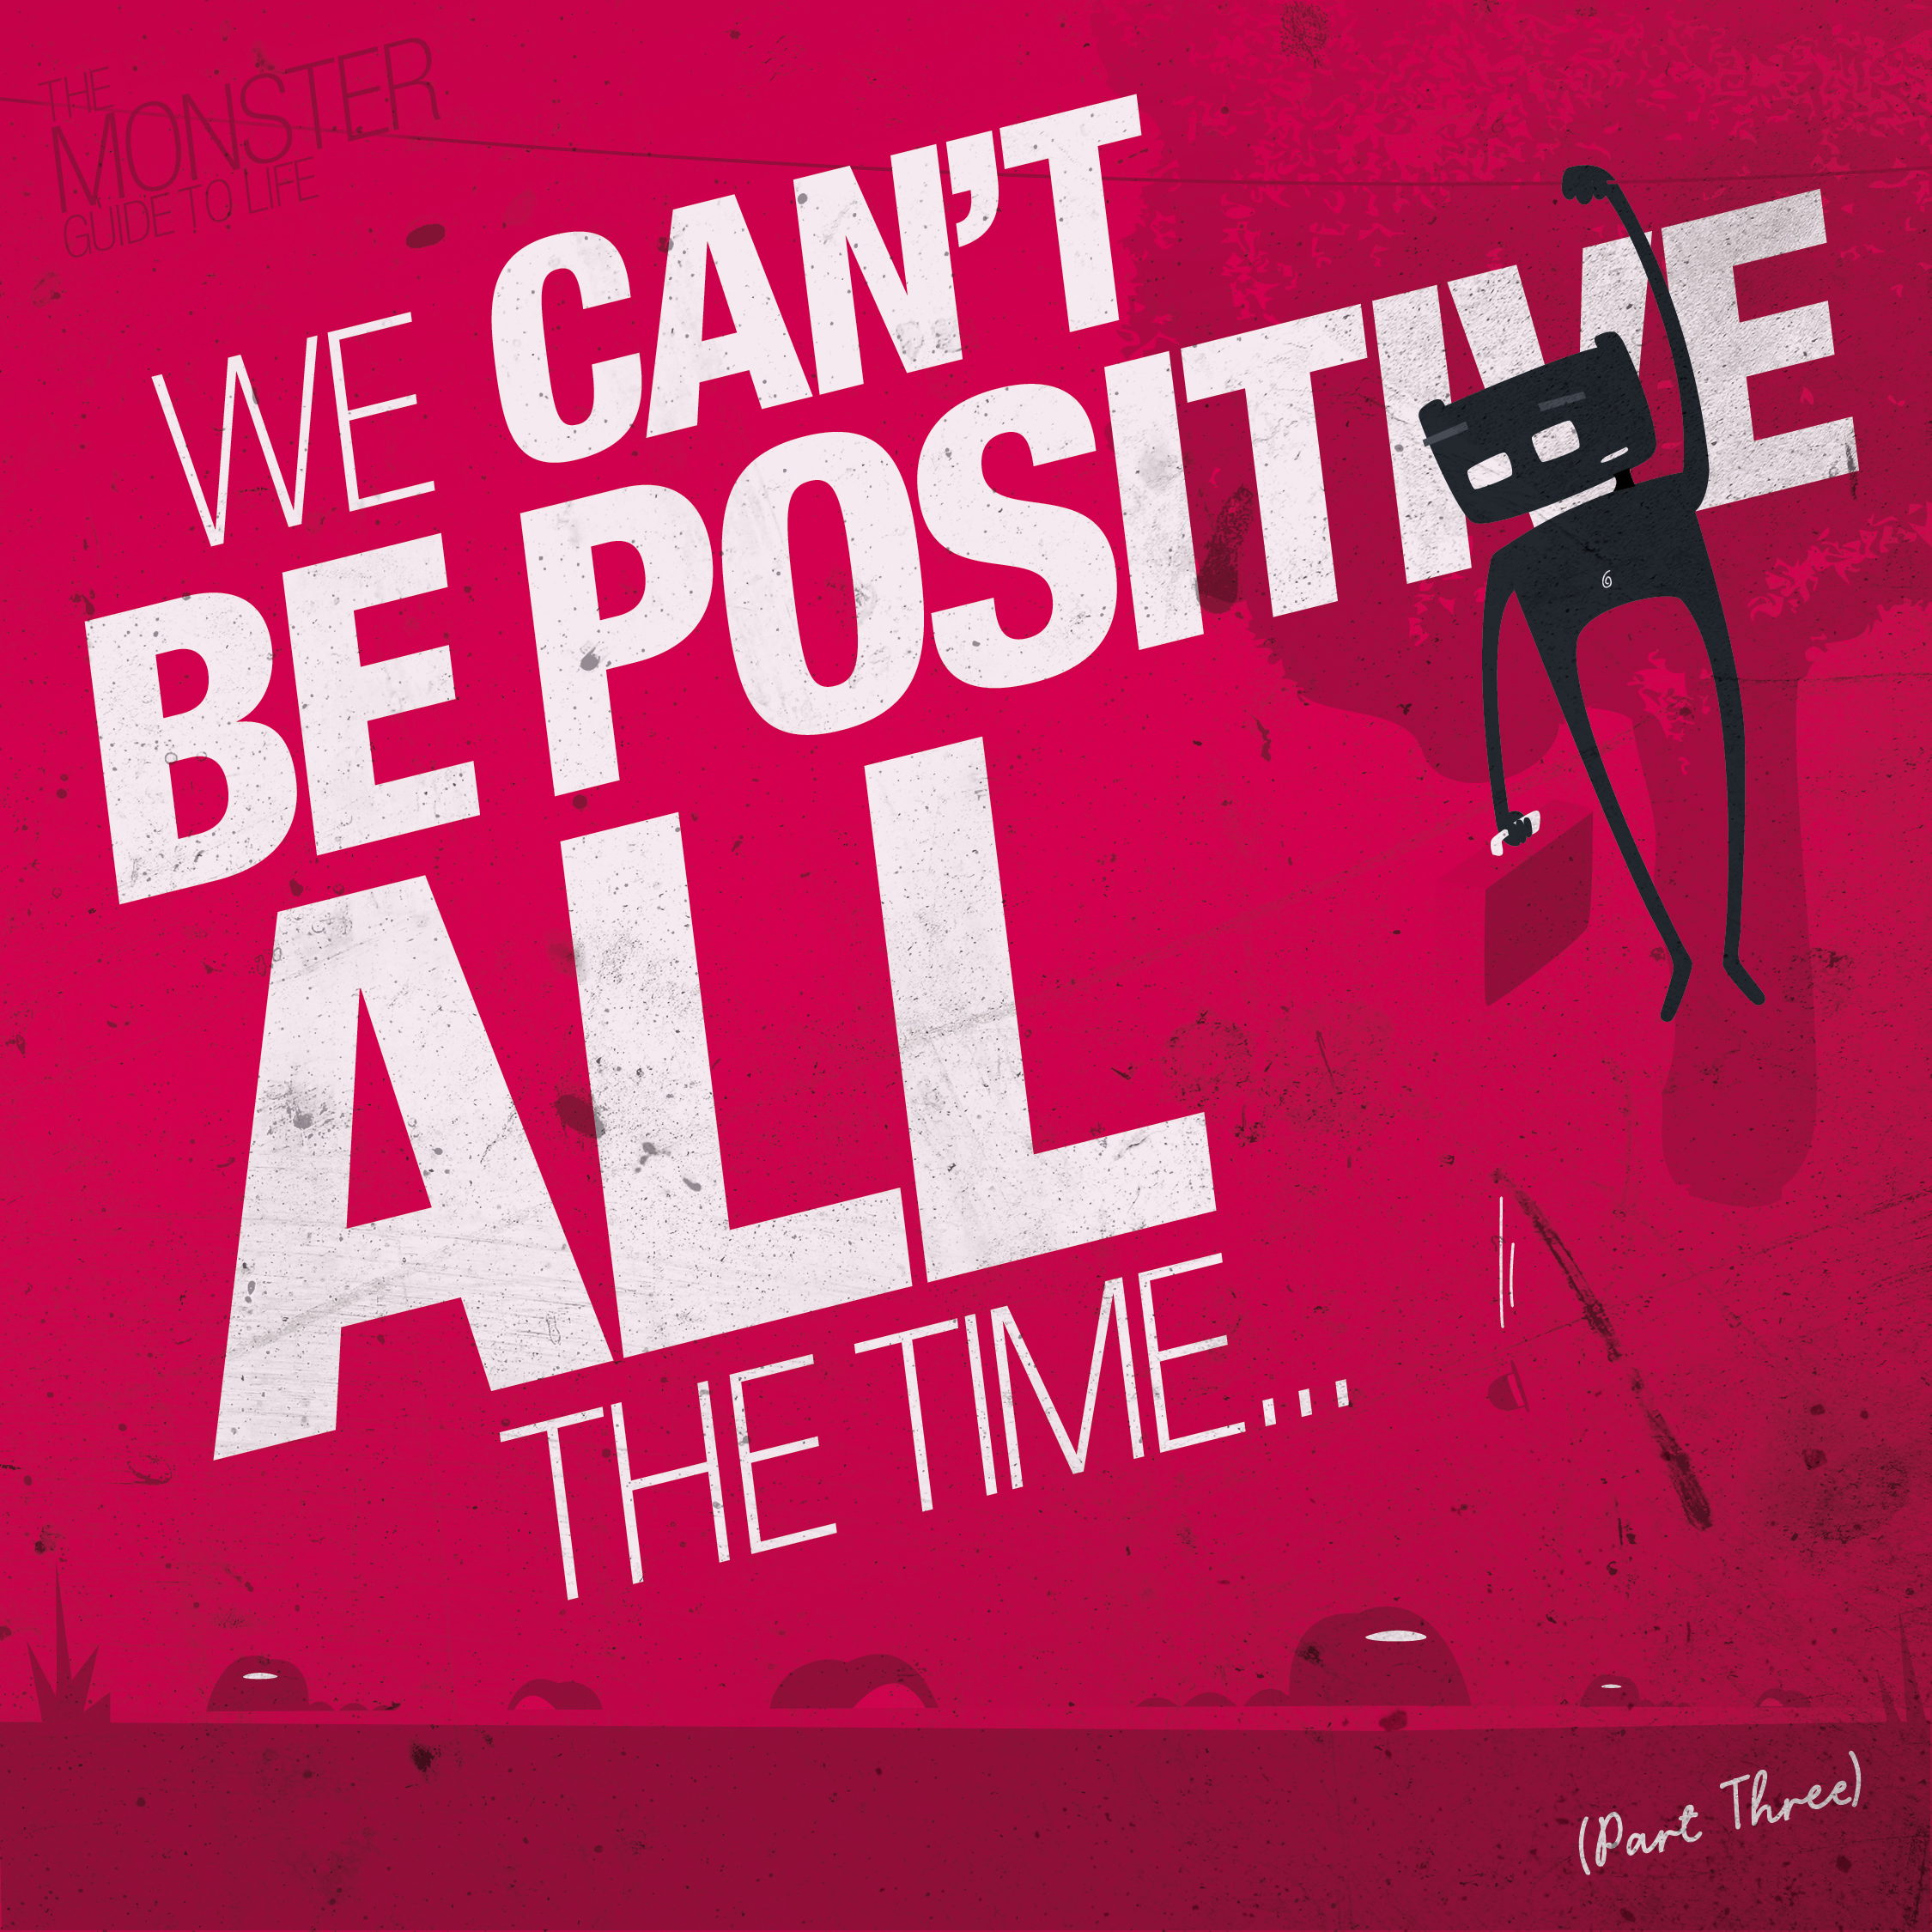 We can't be positive all the time